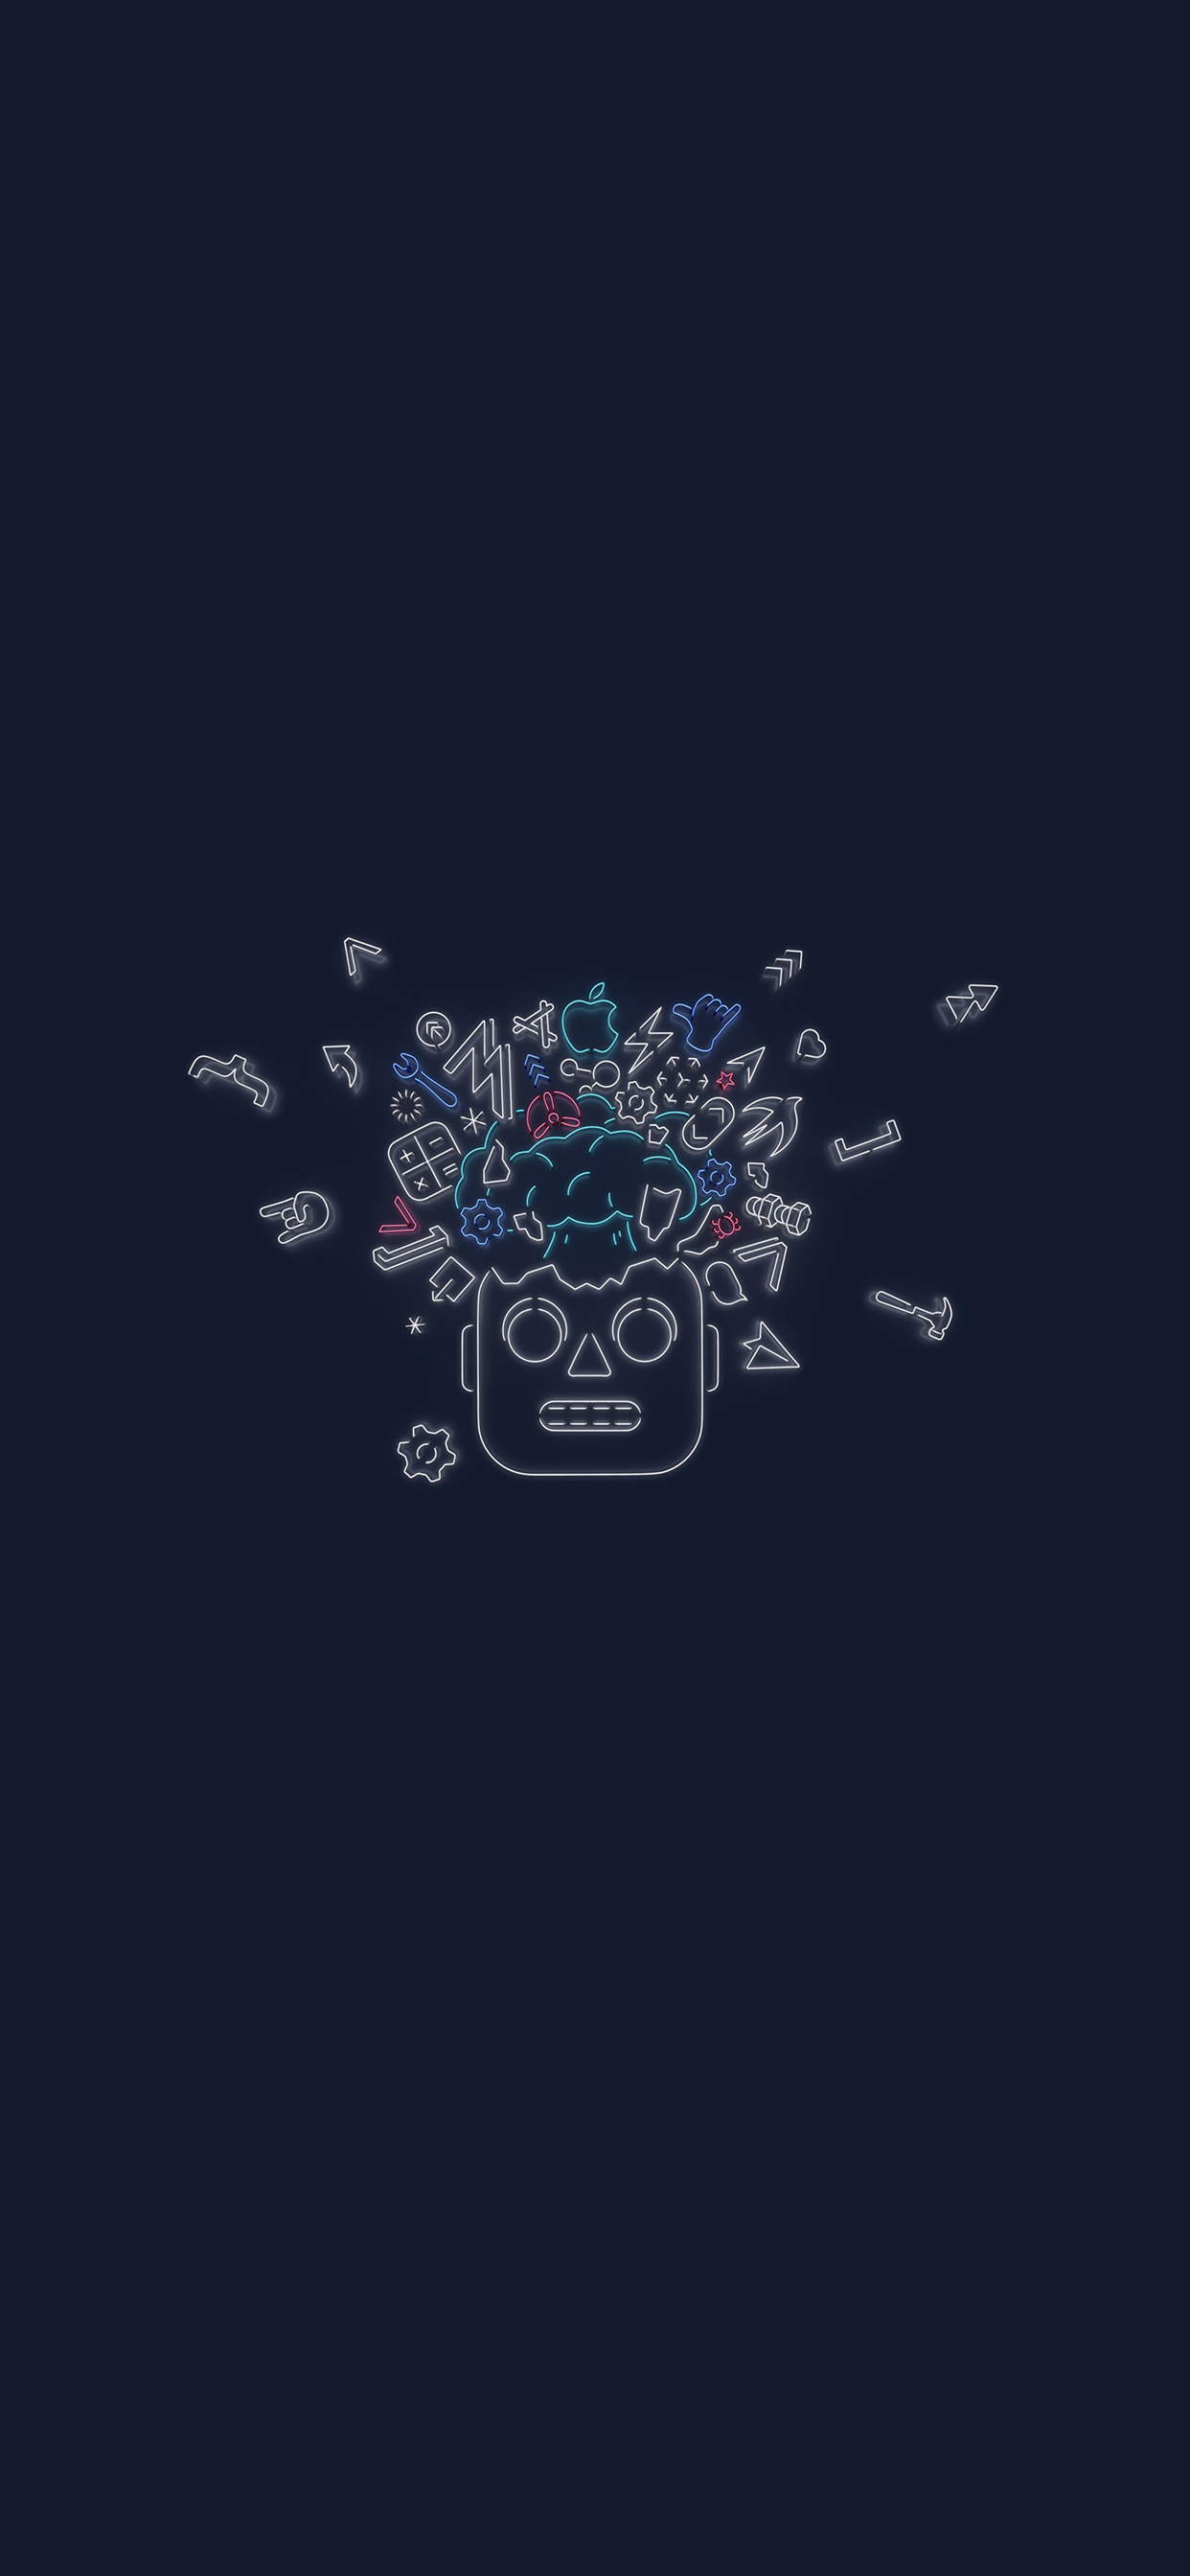 iPhone wallpaper Apple WWDC 2019 robot Fonds d'écran iPhone du 15/03/2019